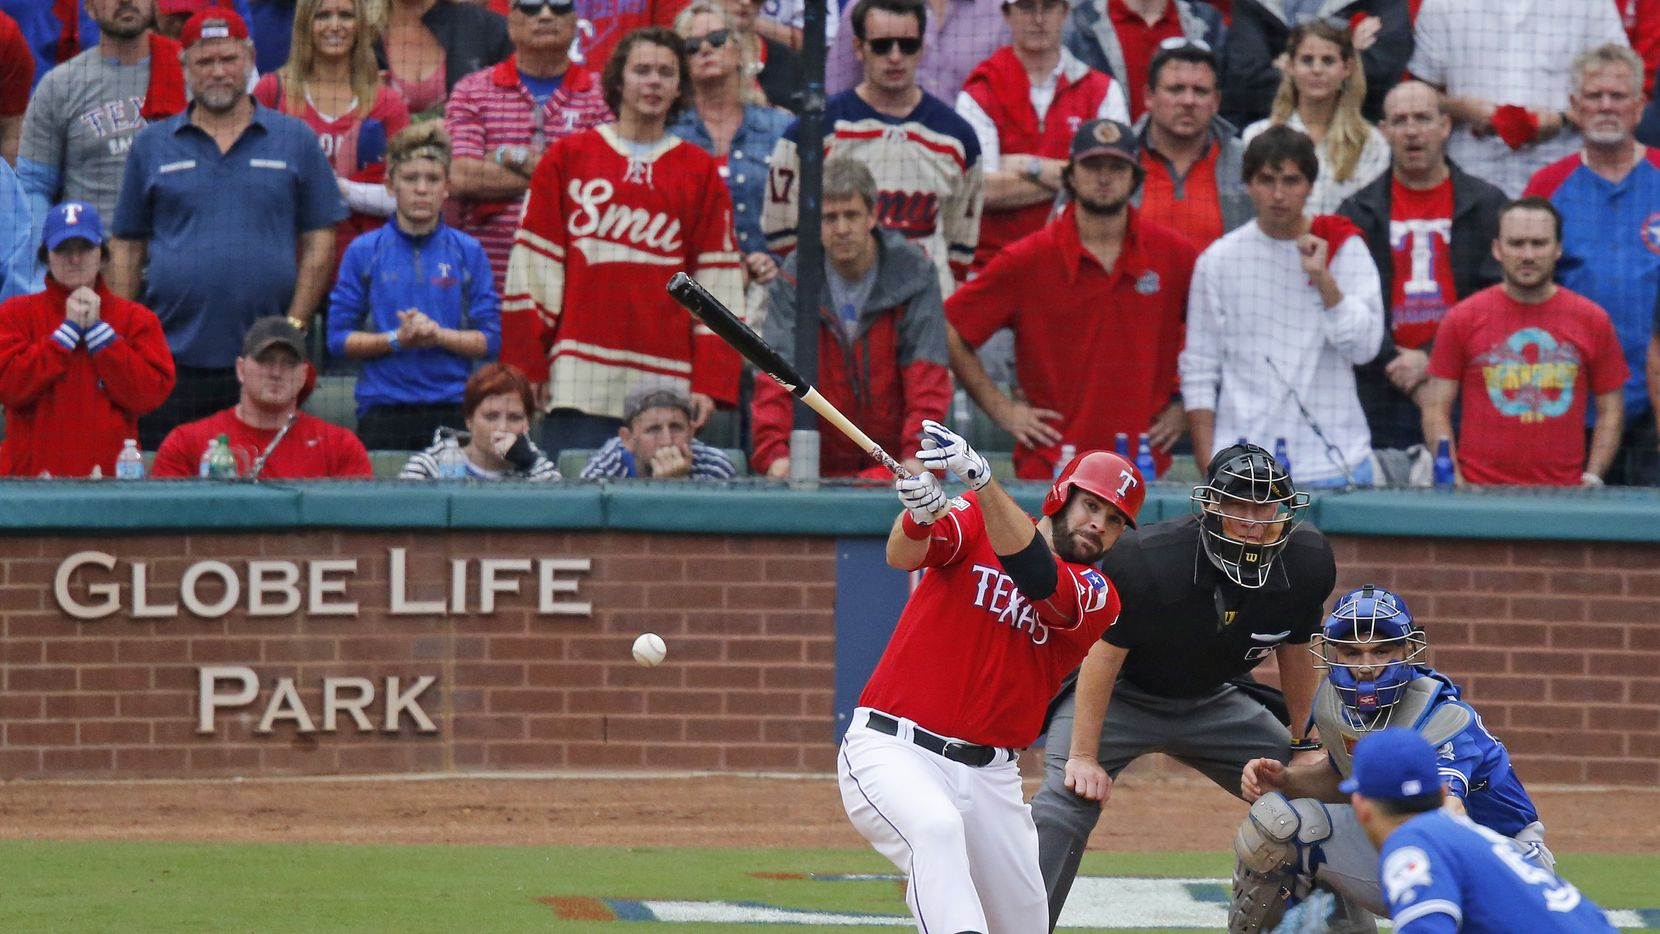 Globe Life Park, the former home of the Texas Rangers, will be renamed Choctaw Stadium in a naming rights deal announced Wednesday.